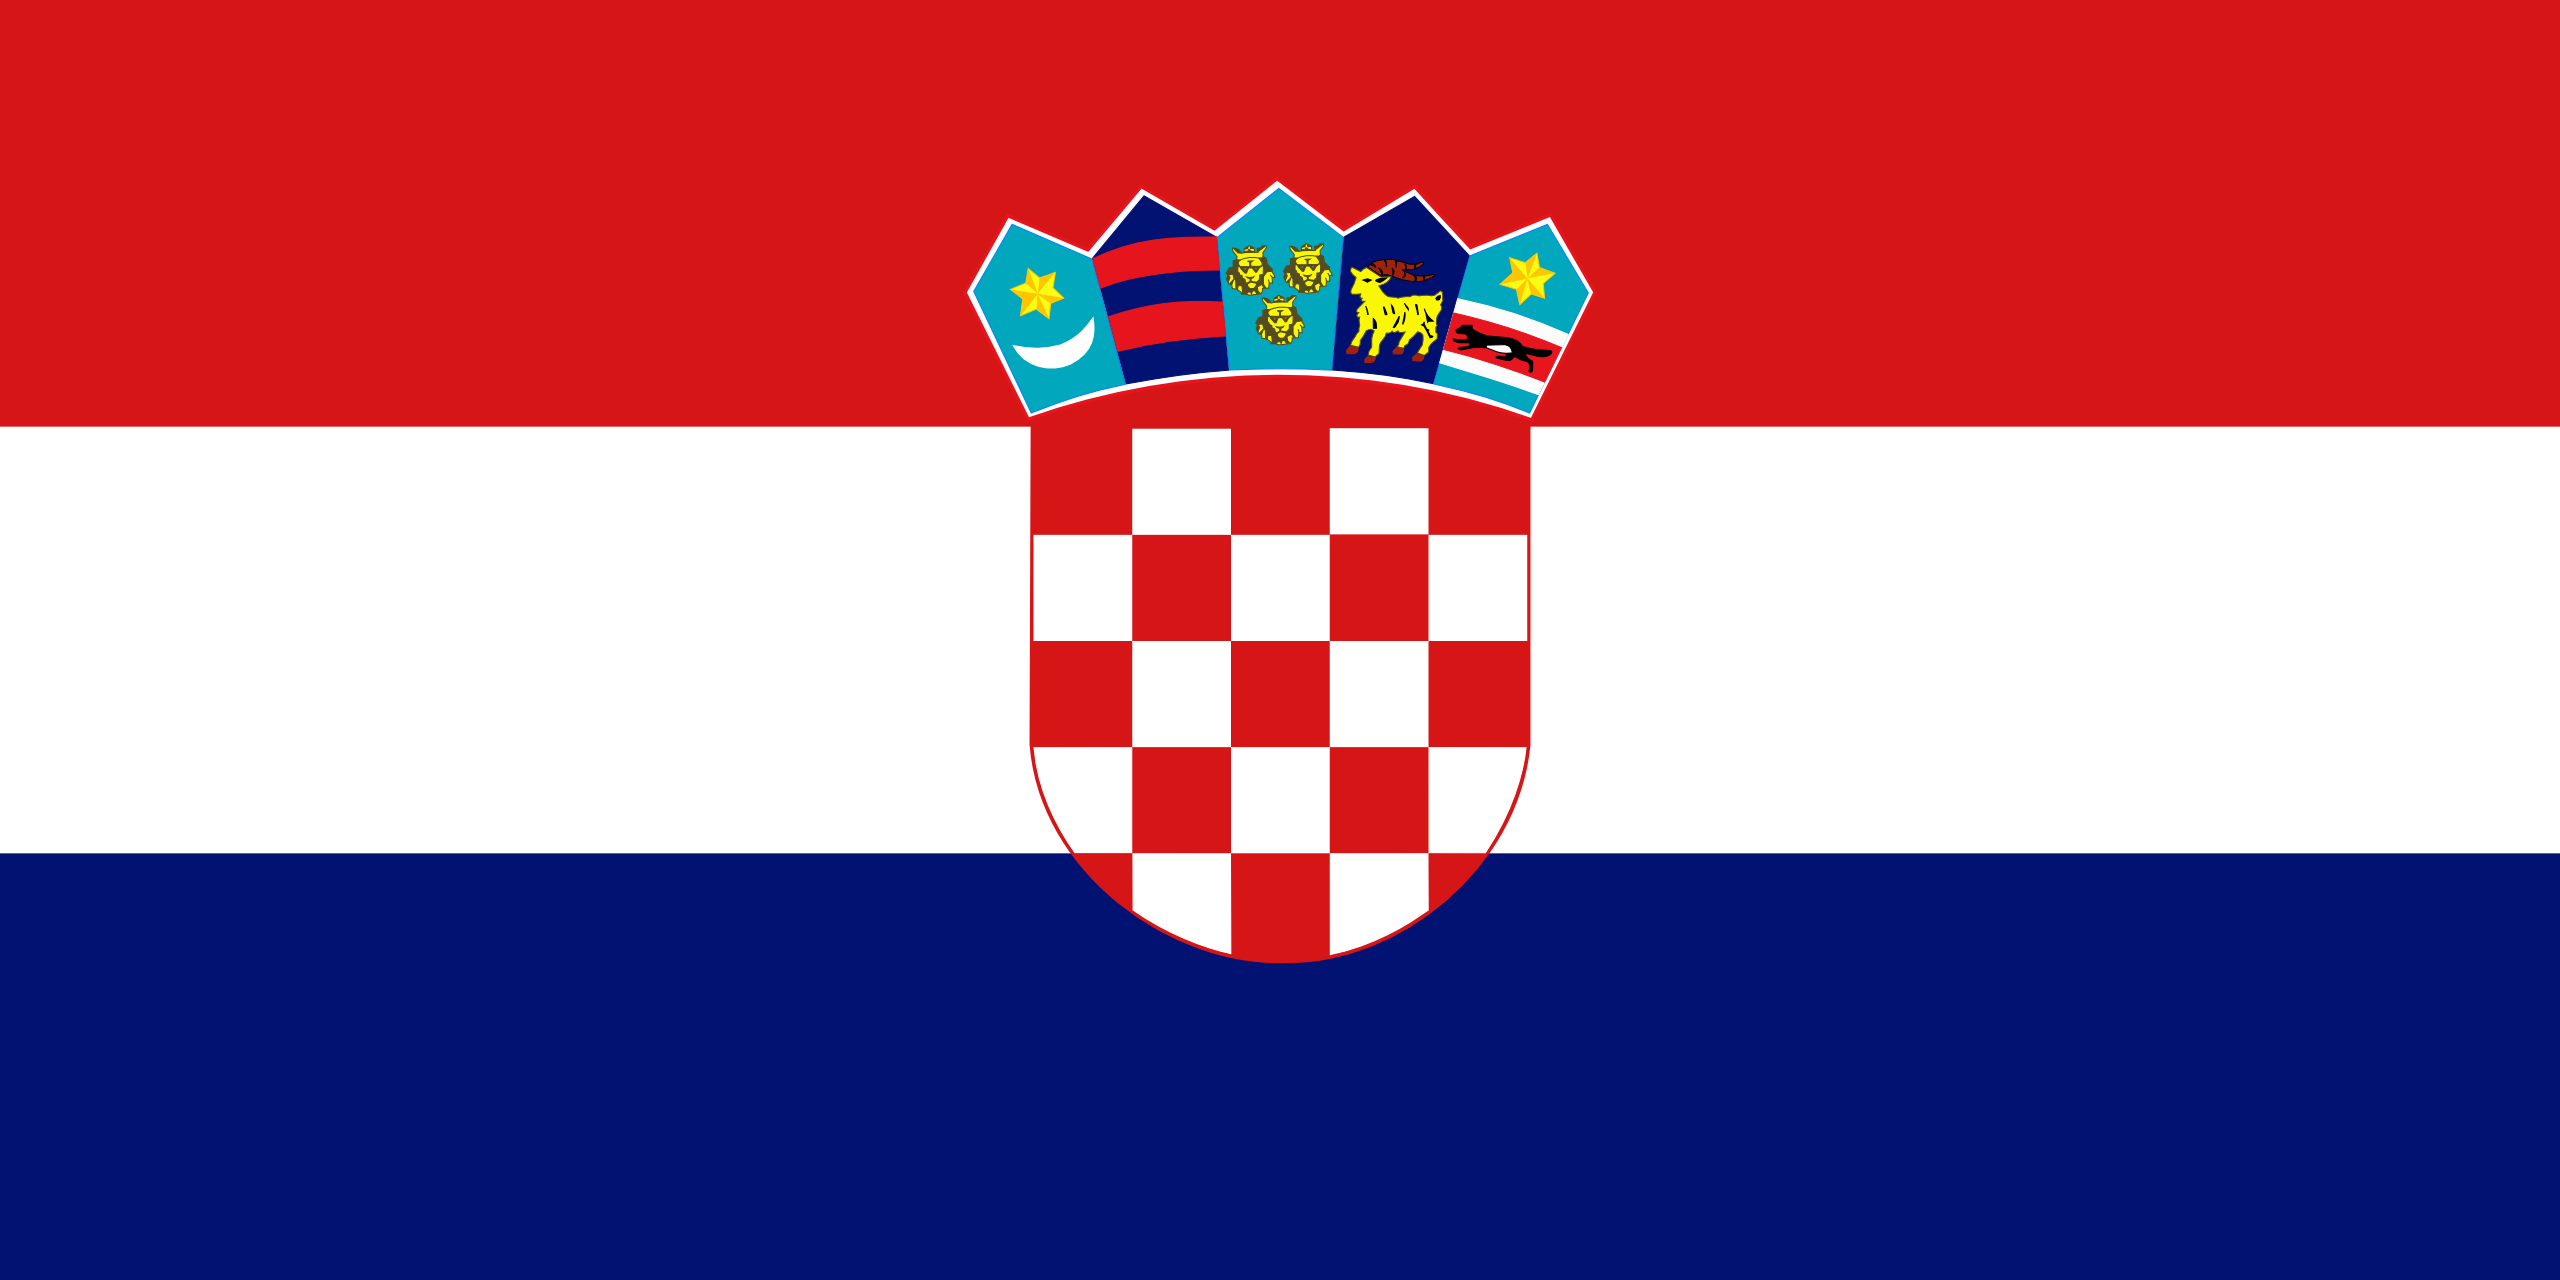 https://aerospaceexport.com/wp-content/uploads/2019/10/croatia.png